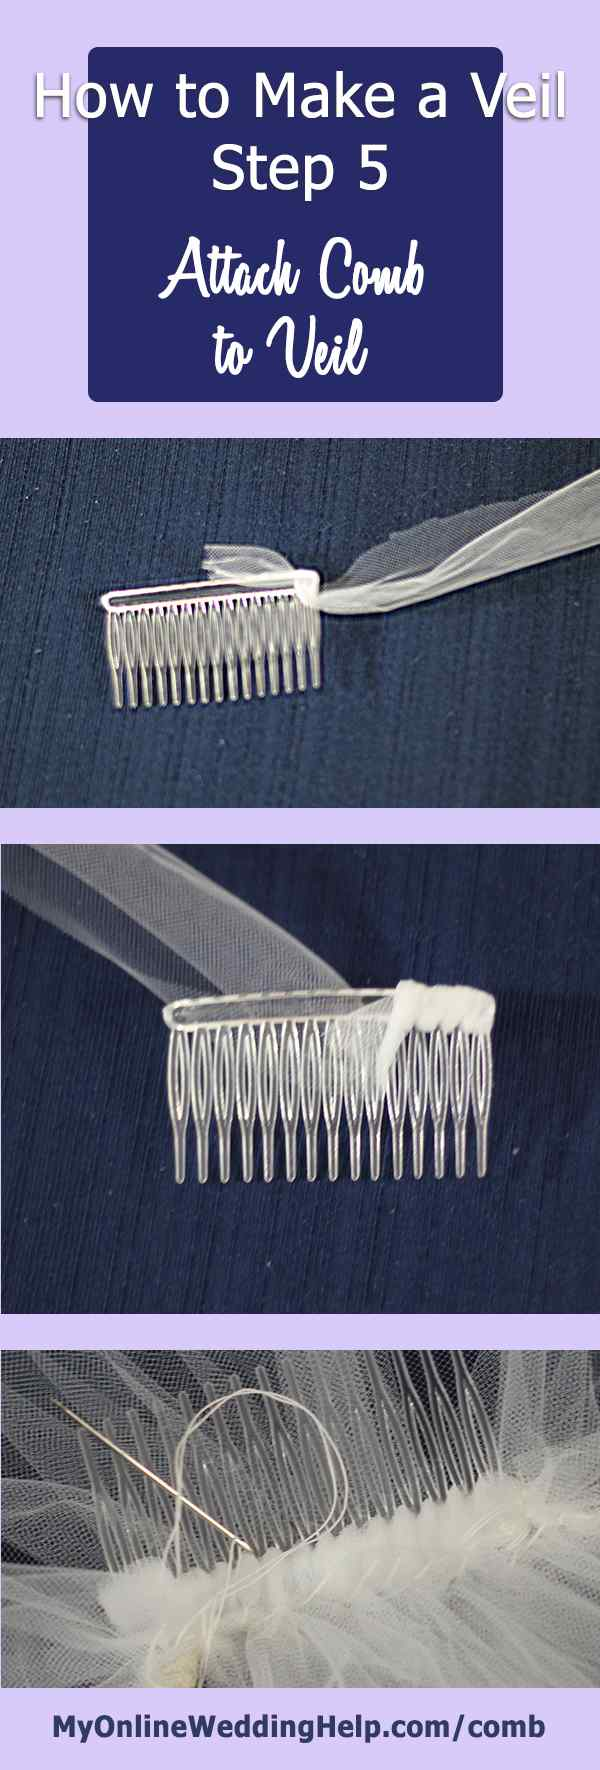 Making A Bridal Veil With Comb Diy This Is The Last Step In